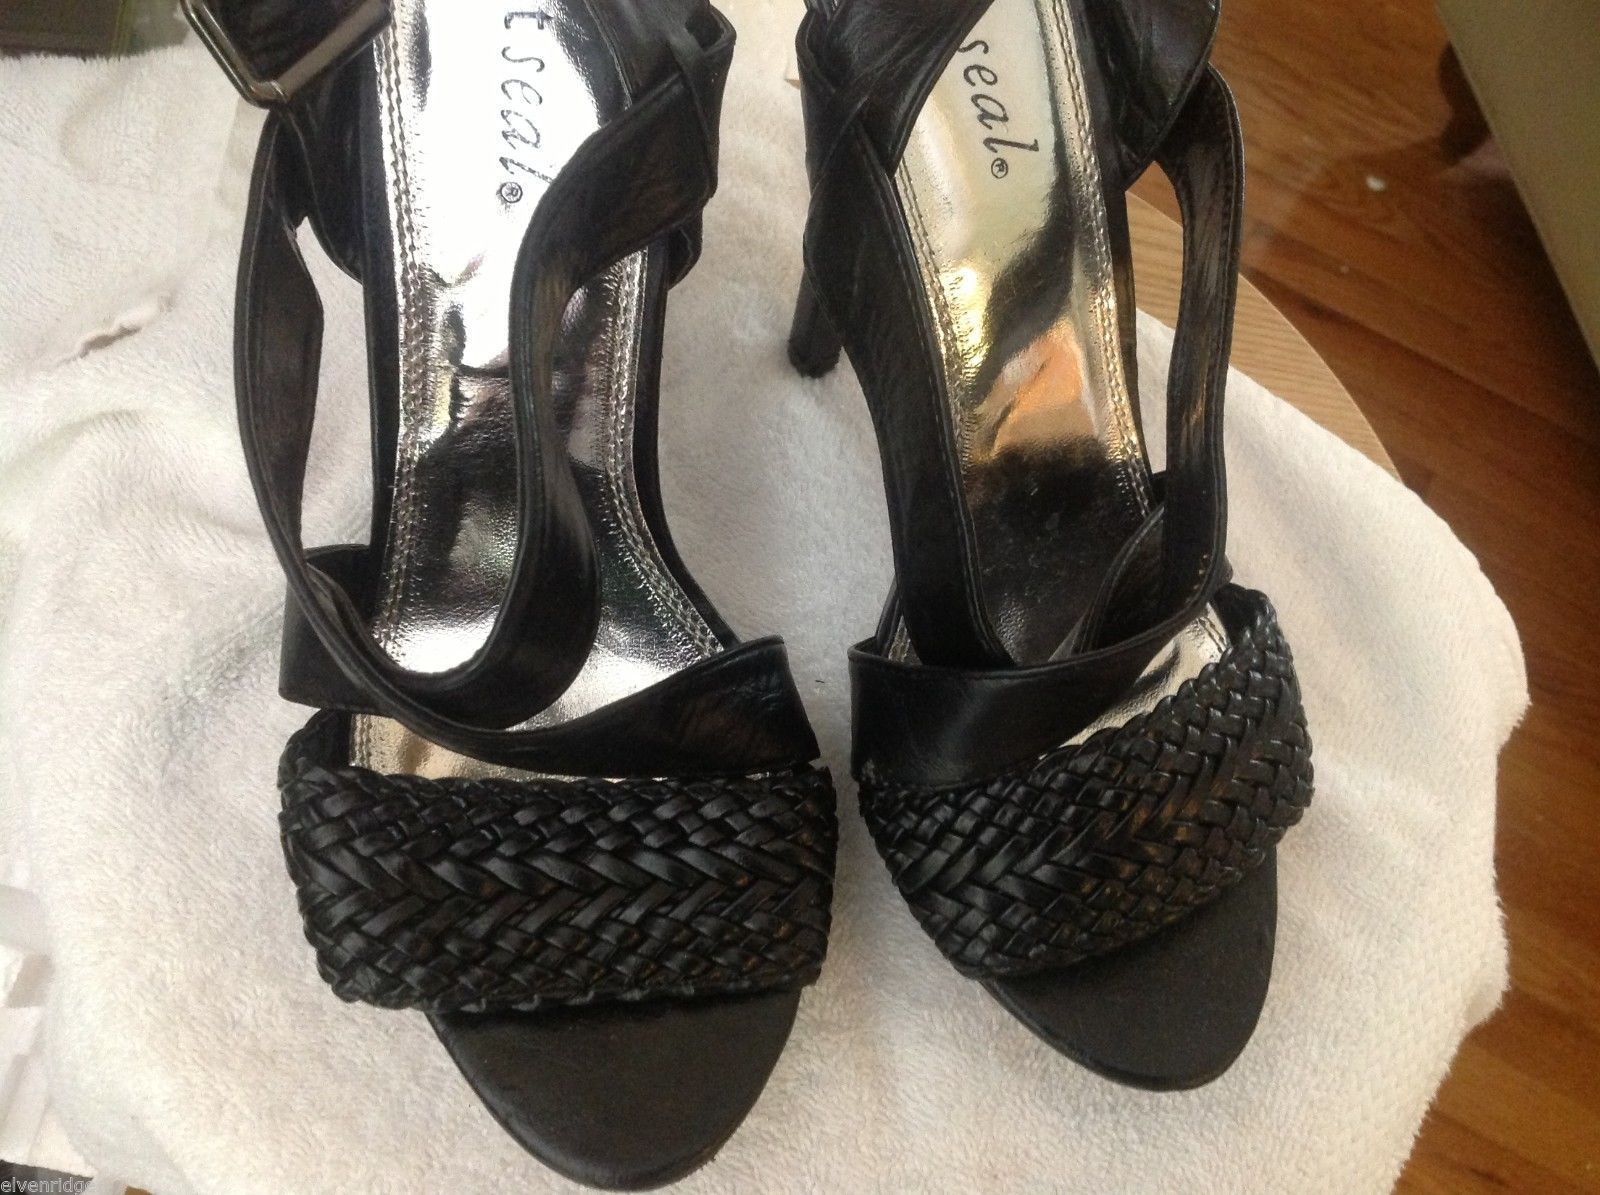 Wet Seal Open toe heel sling back with braided cross toe design in black 8.5